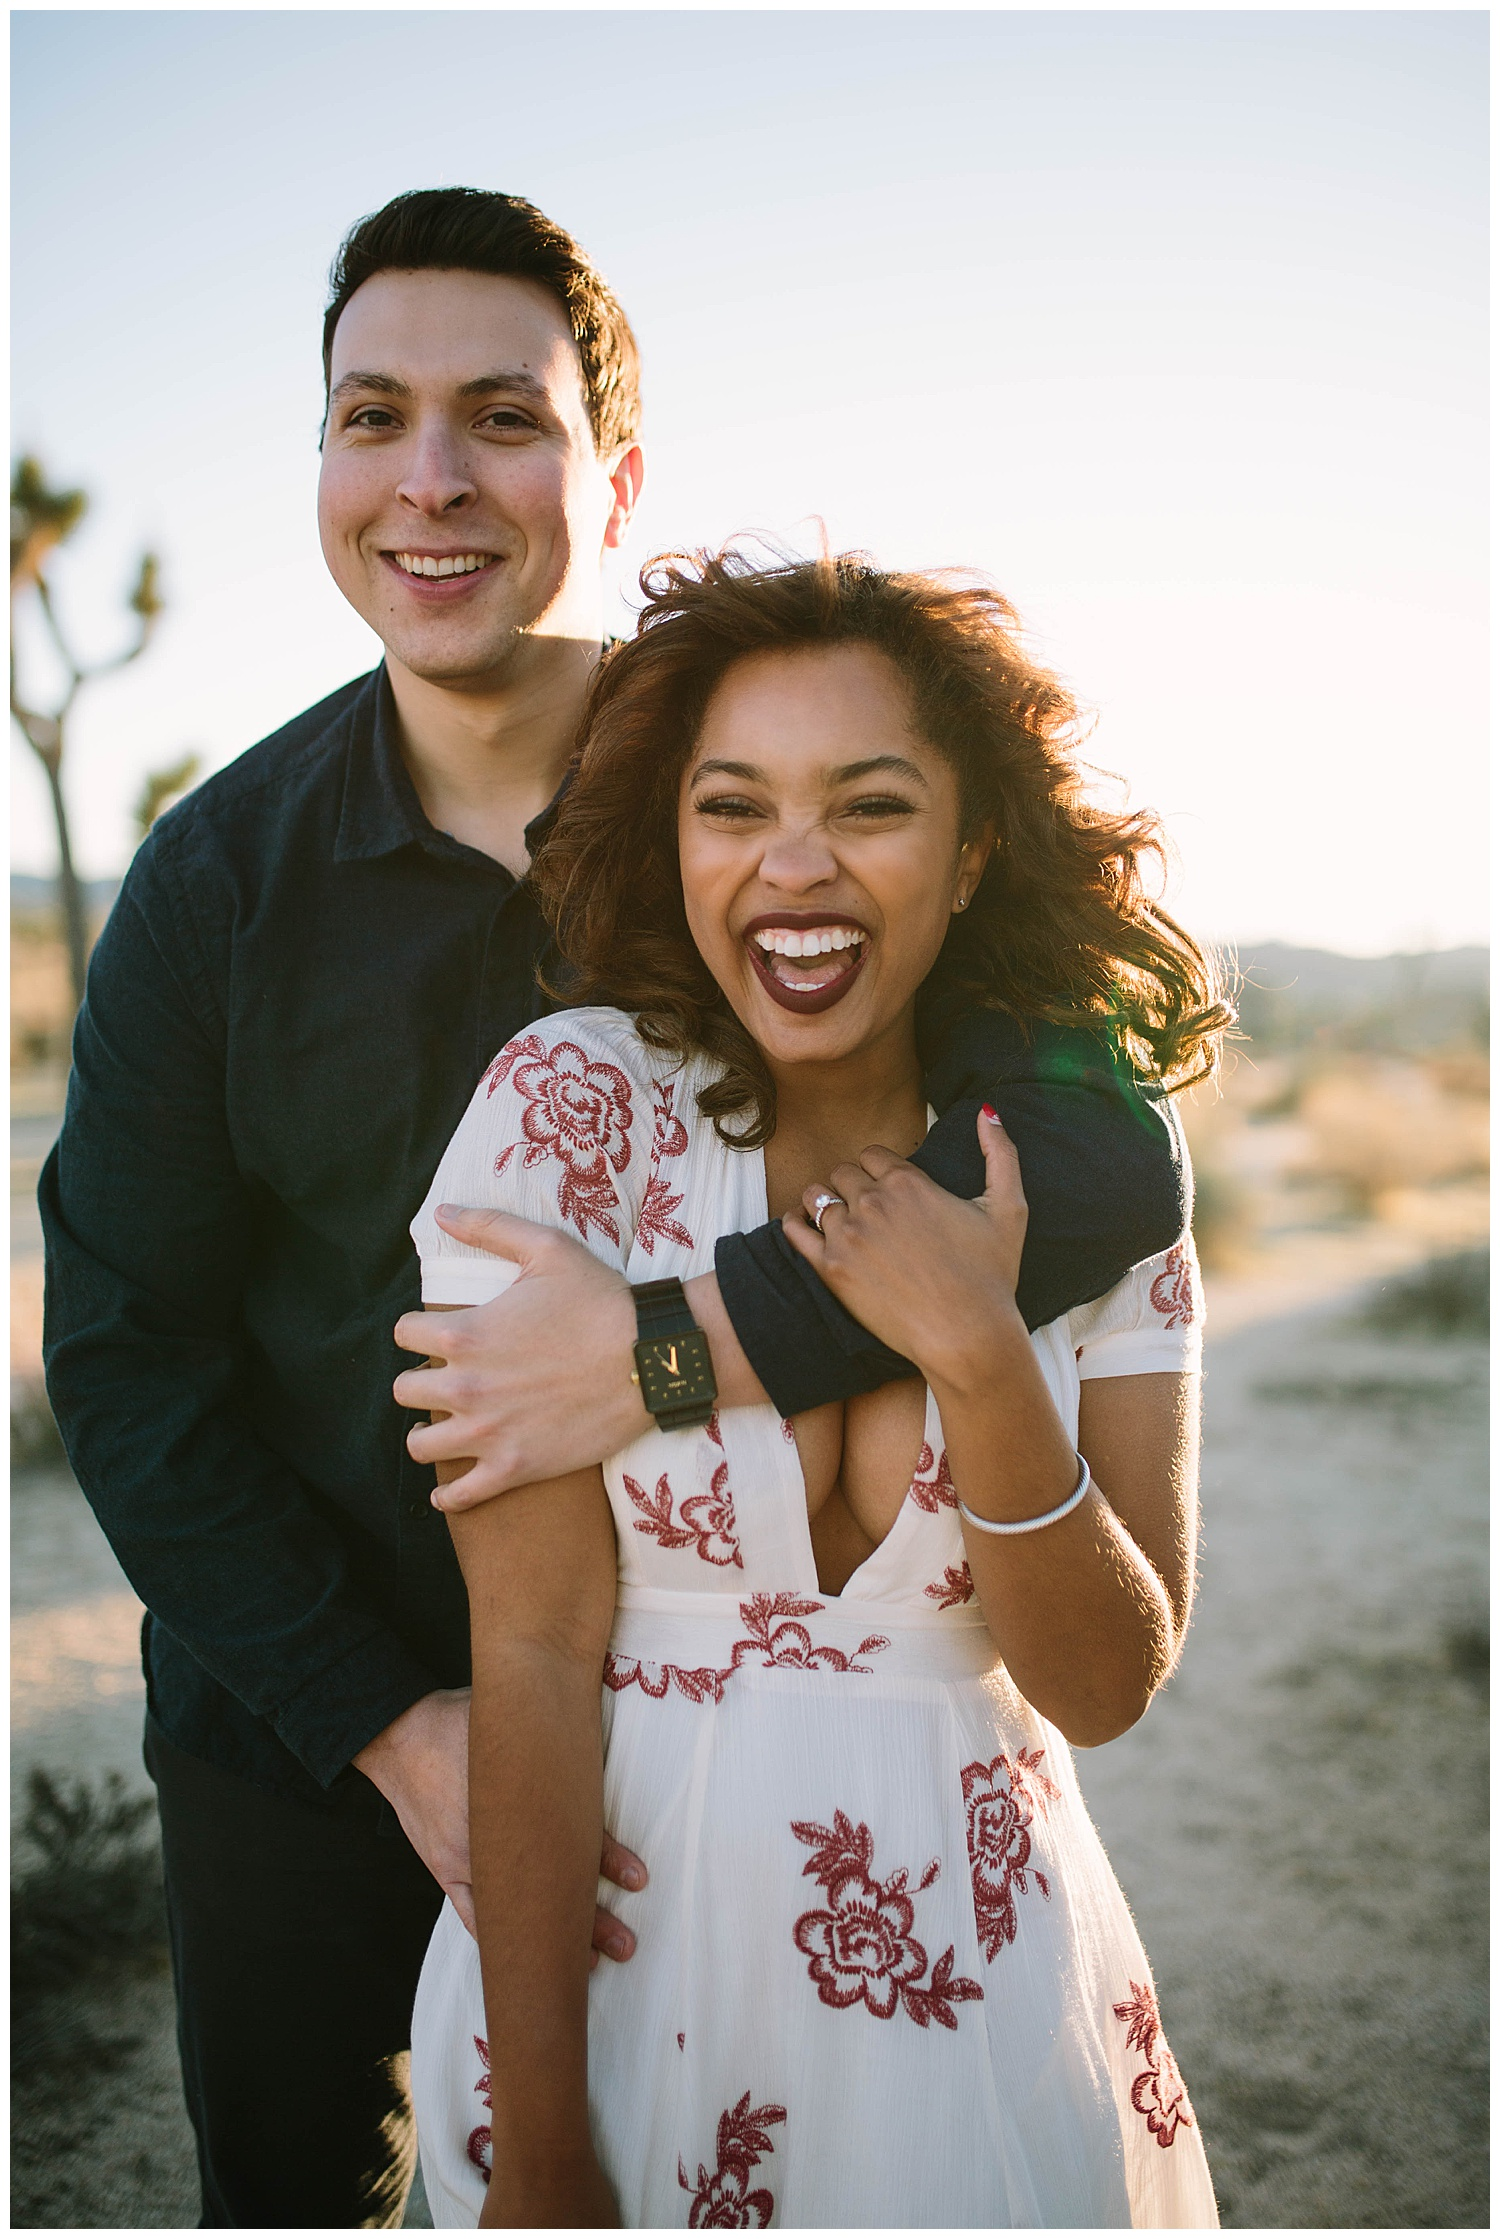 la.lifestyle.photography.session.engaged.malibu.joshuatree.kendralynnephotography-50.jpg